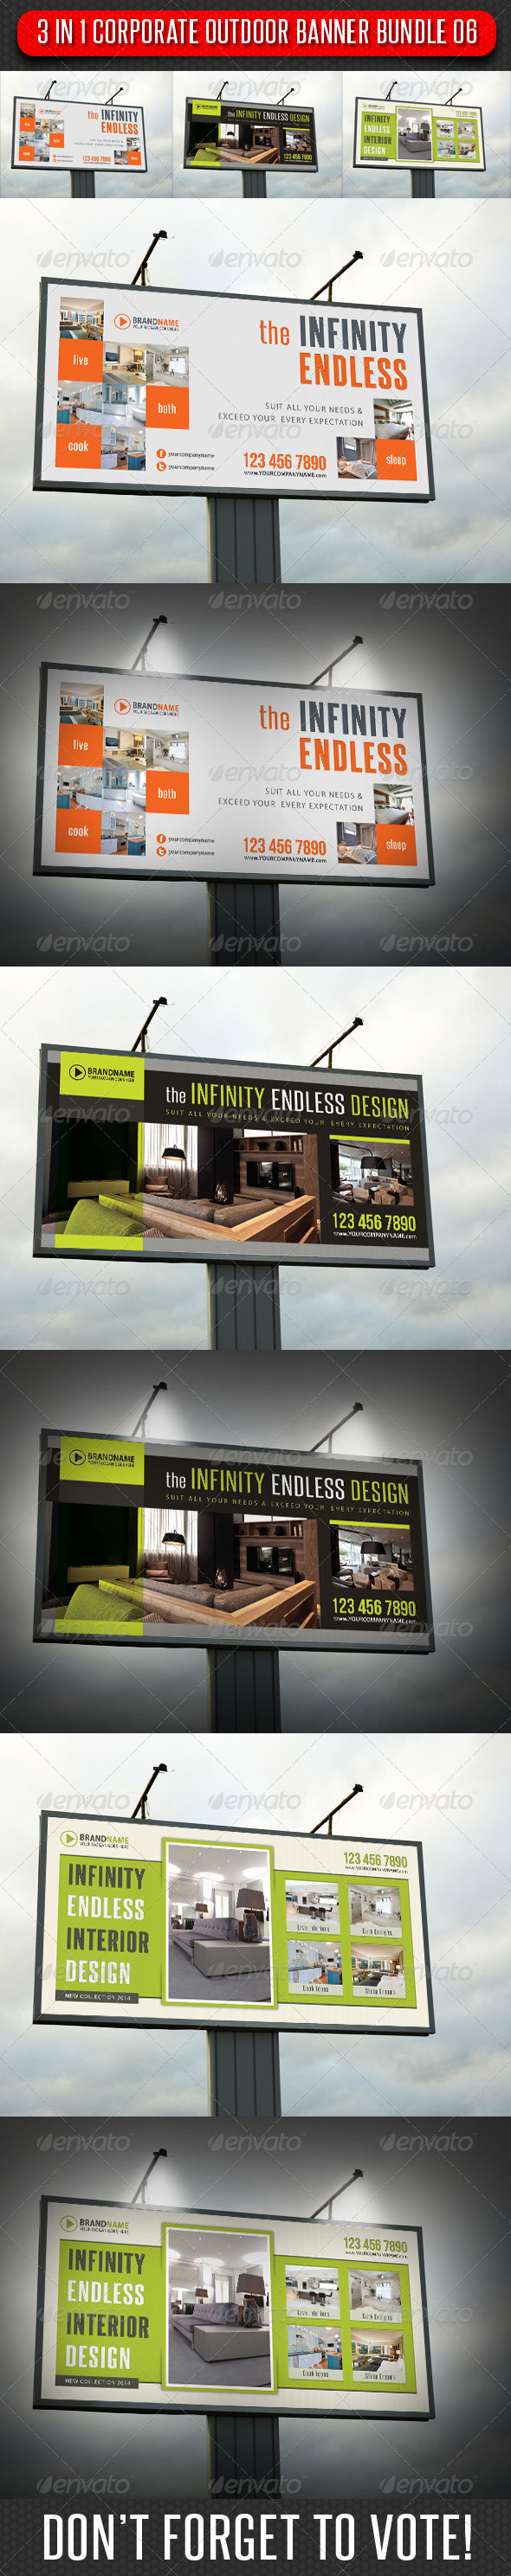 GraphicRiver 3 in 1 Corporate Outdoor Banner Bundle 06 6747567